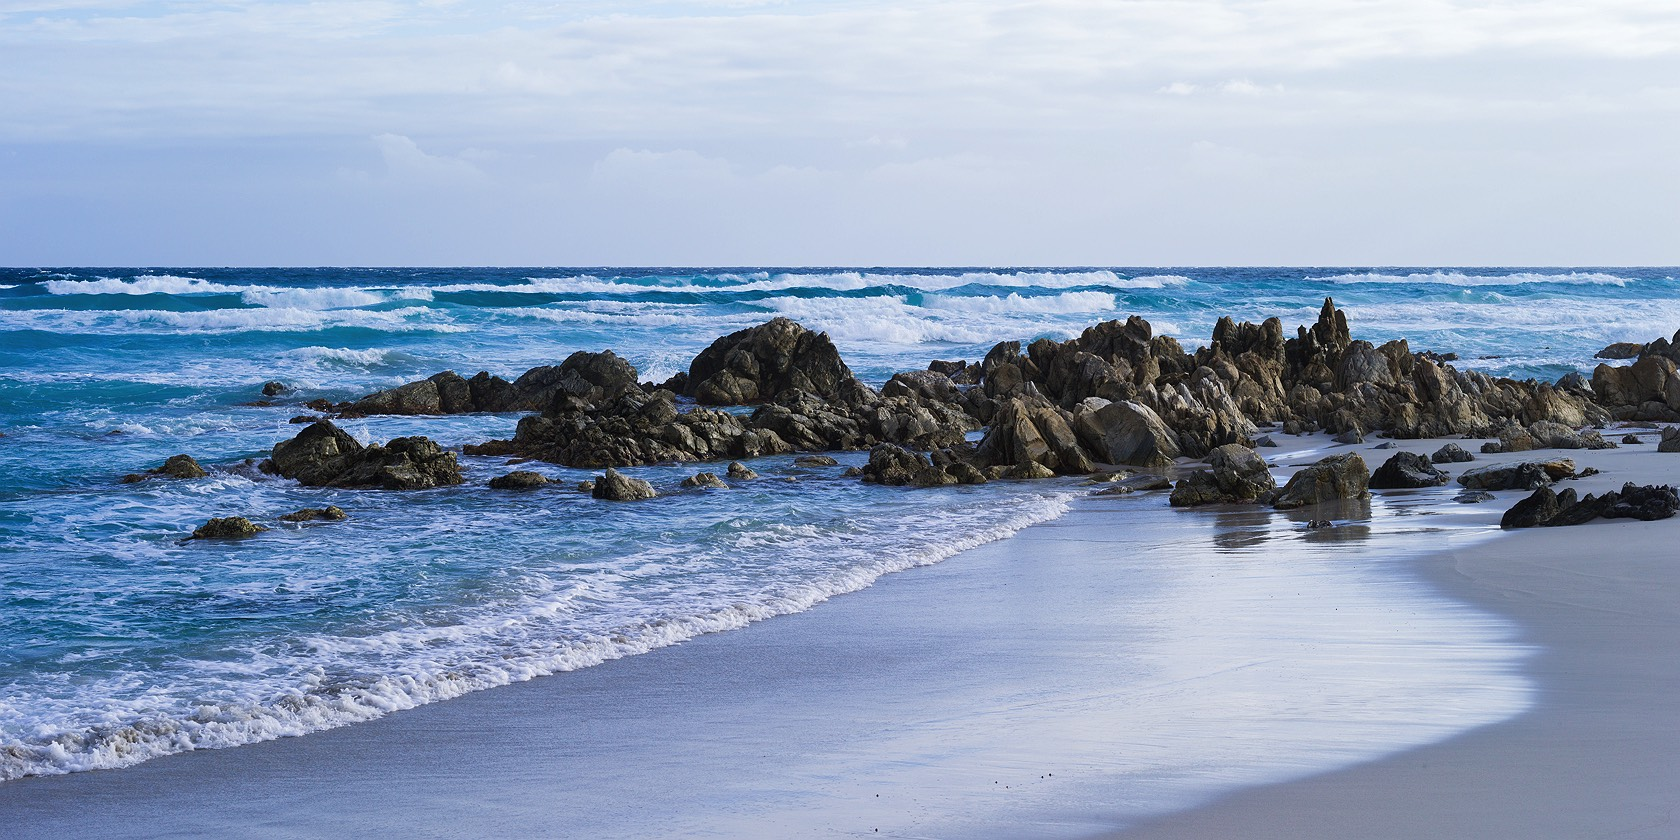 11_hammersley-inlet-jagged-rocks-rivermouth-fitzgerald-river-np